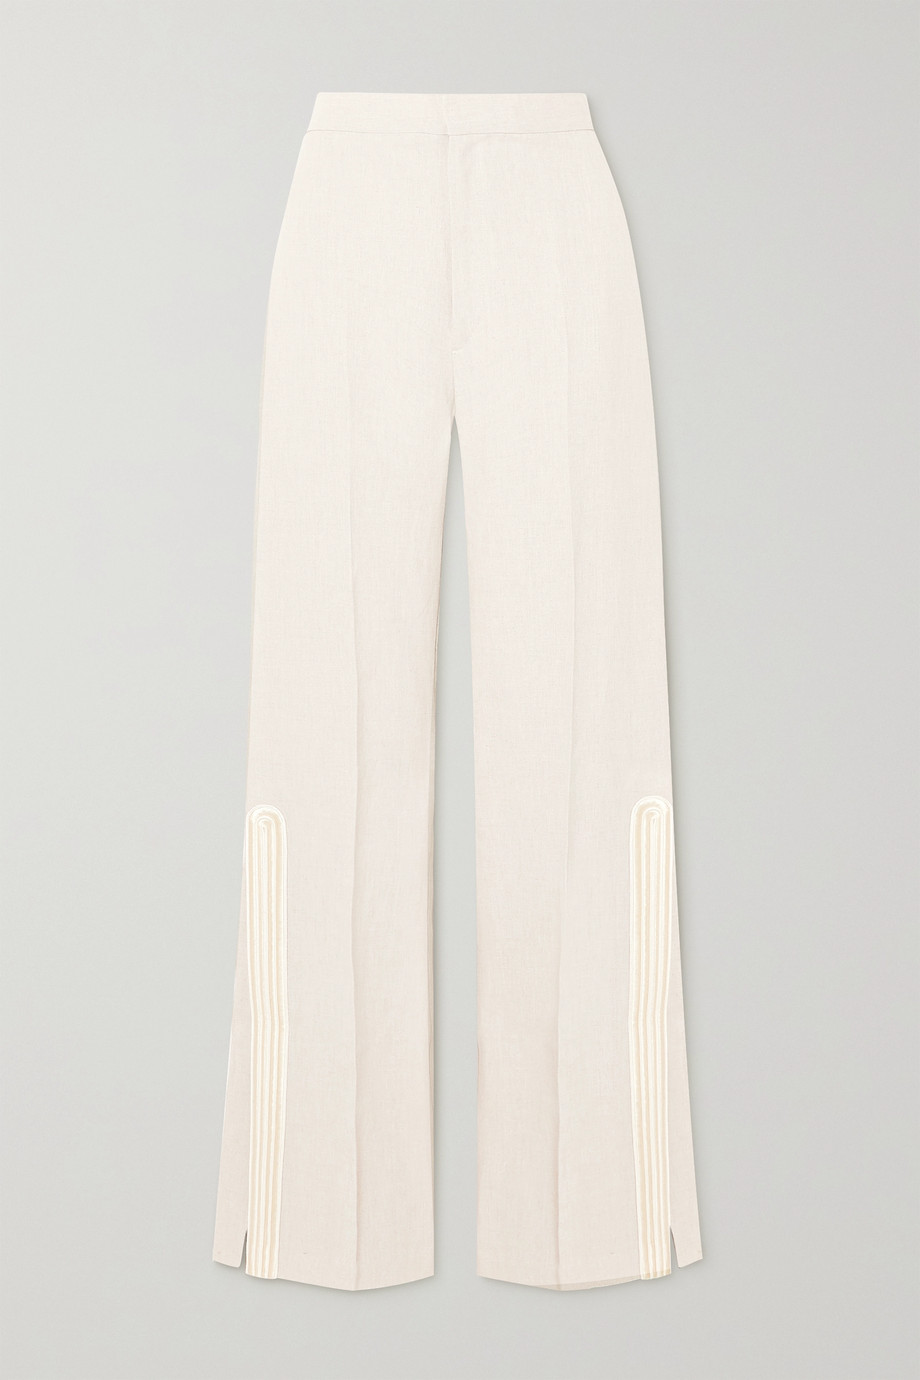 ZEUS + DIONE Petra embroidered satin-trimmed grain de poudre flared pants